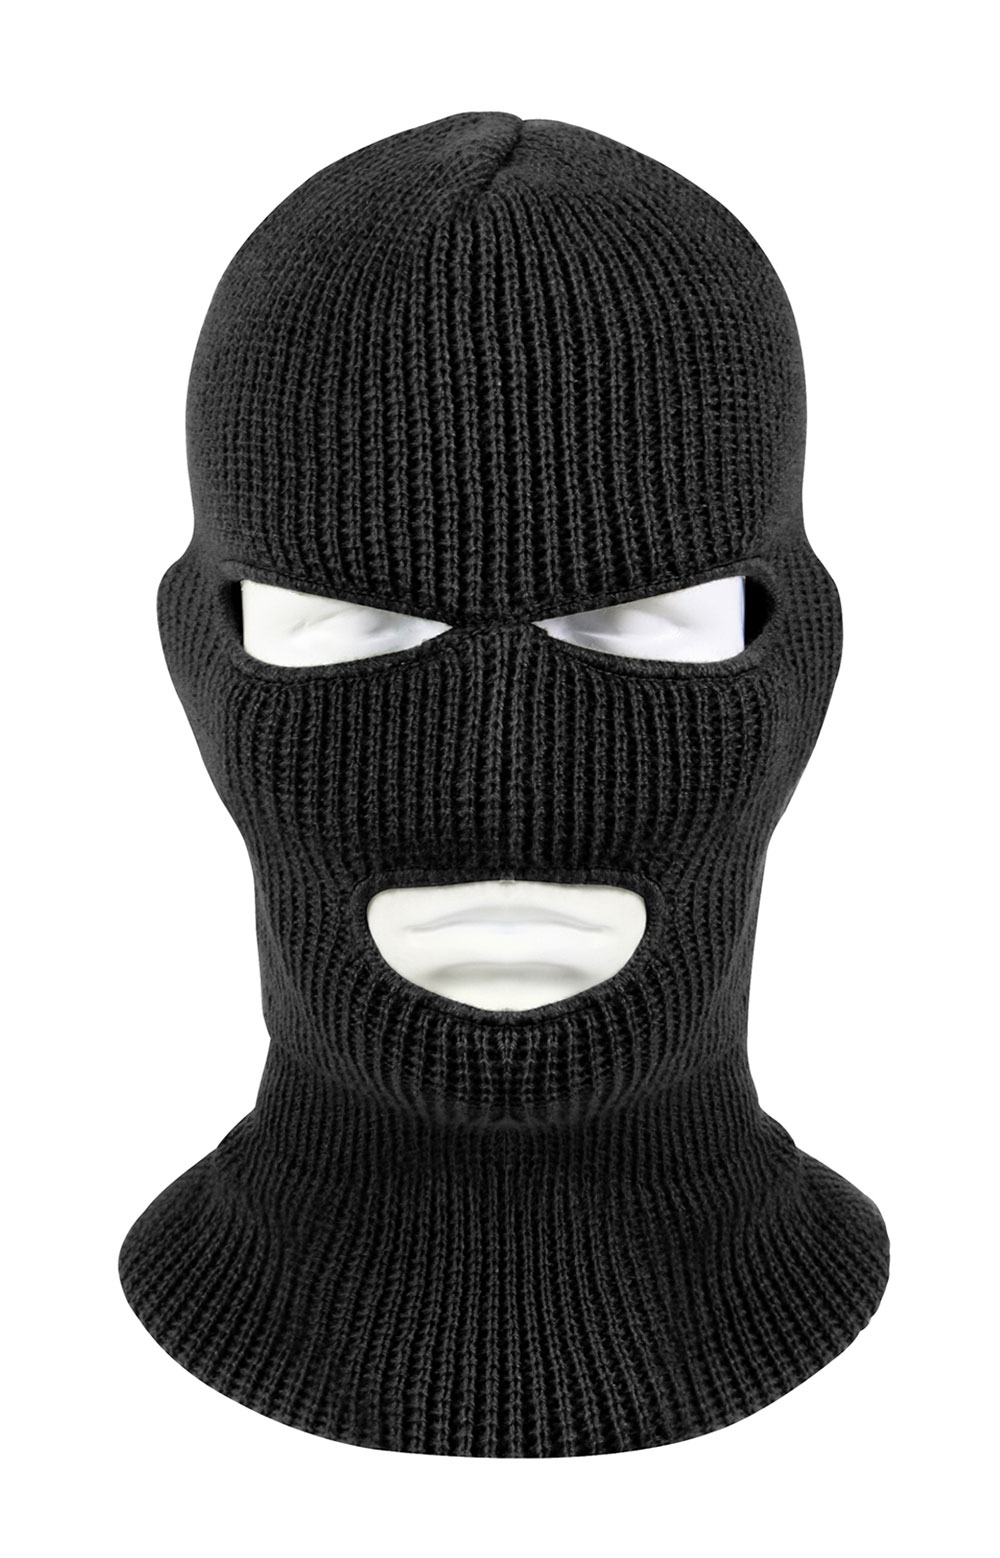 (5504) 3 Hole Face Mask - Black